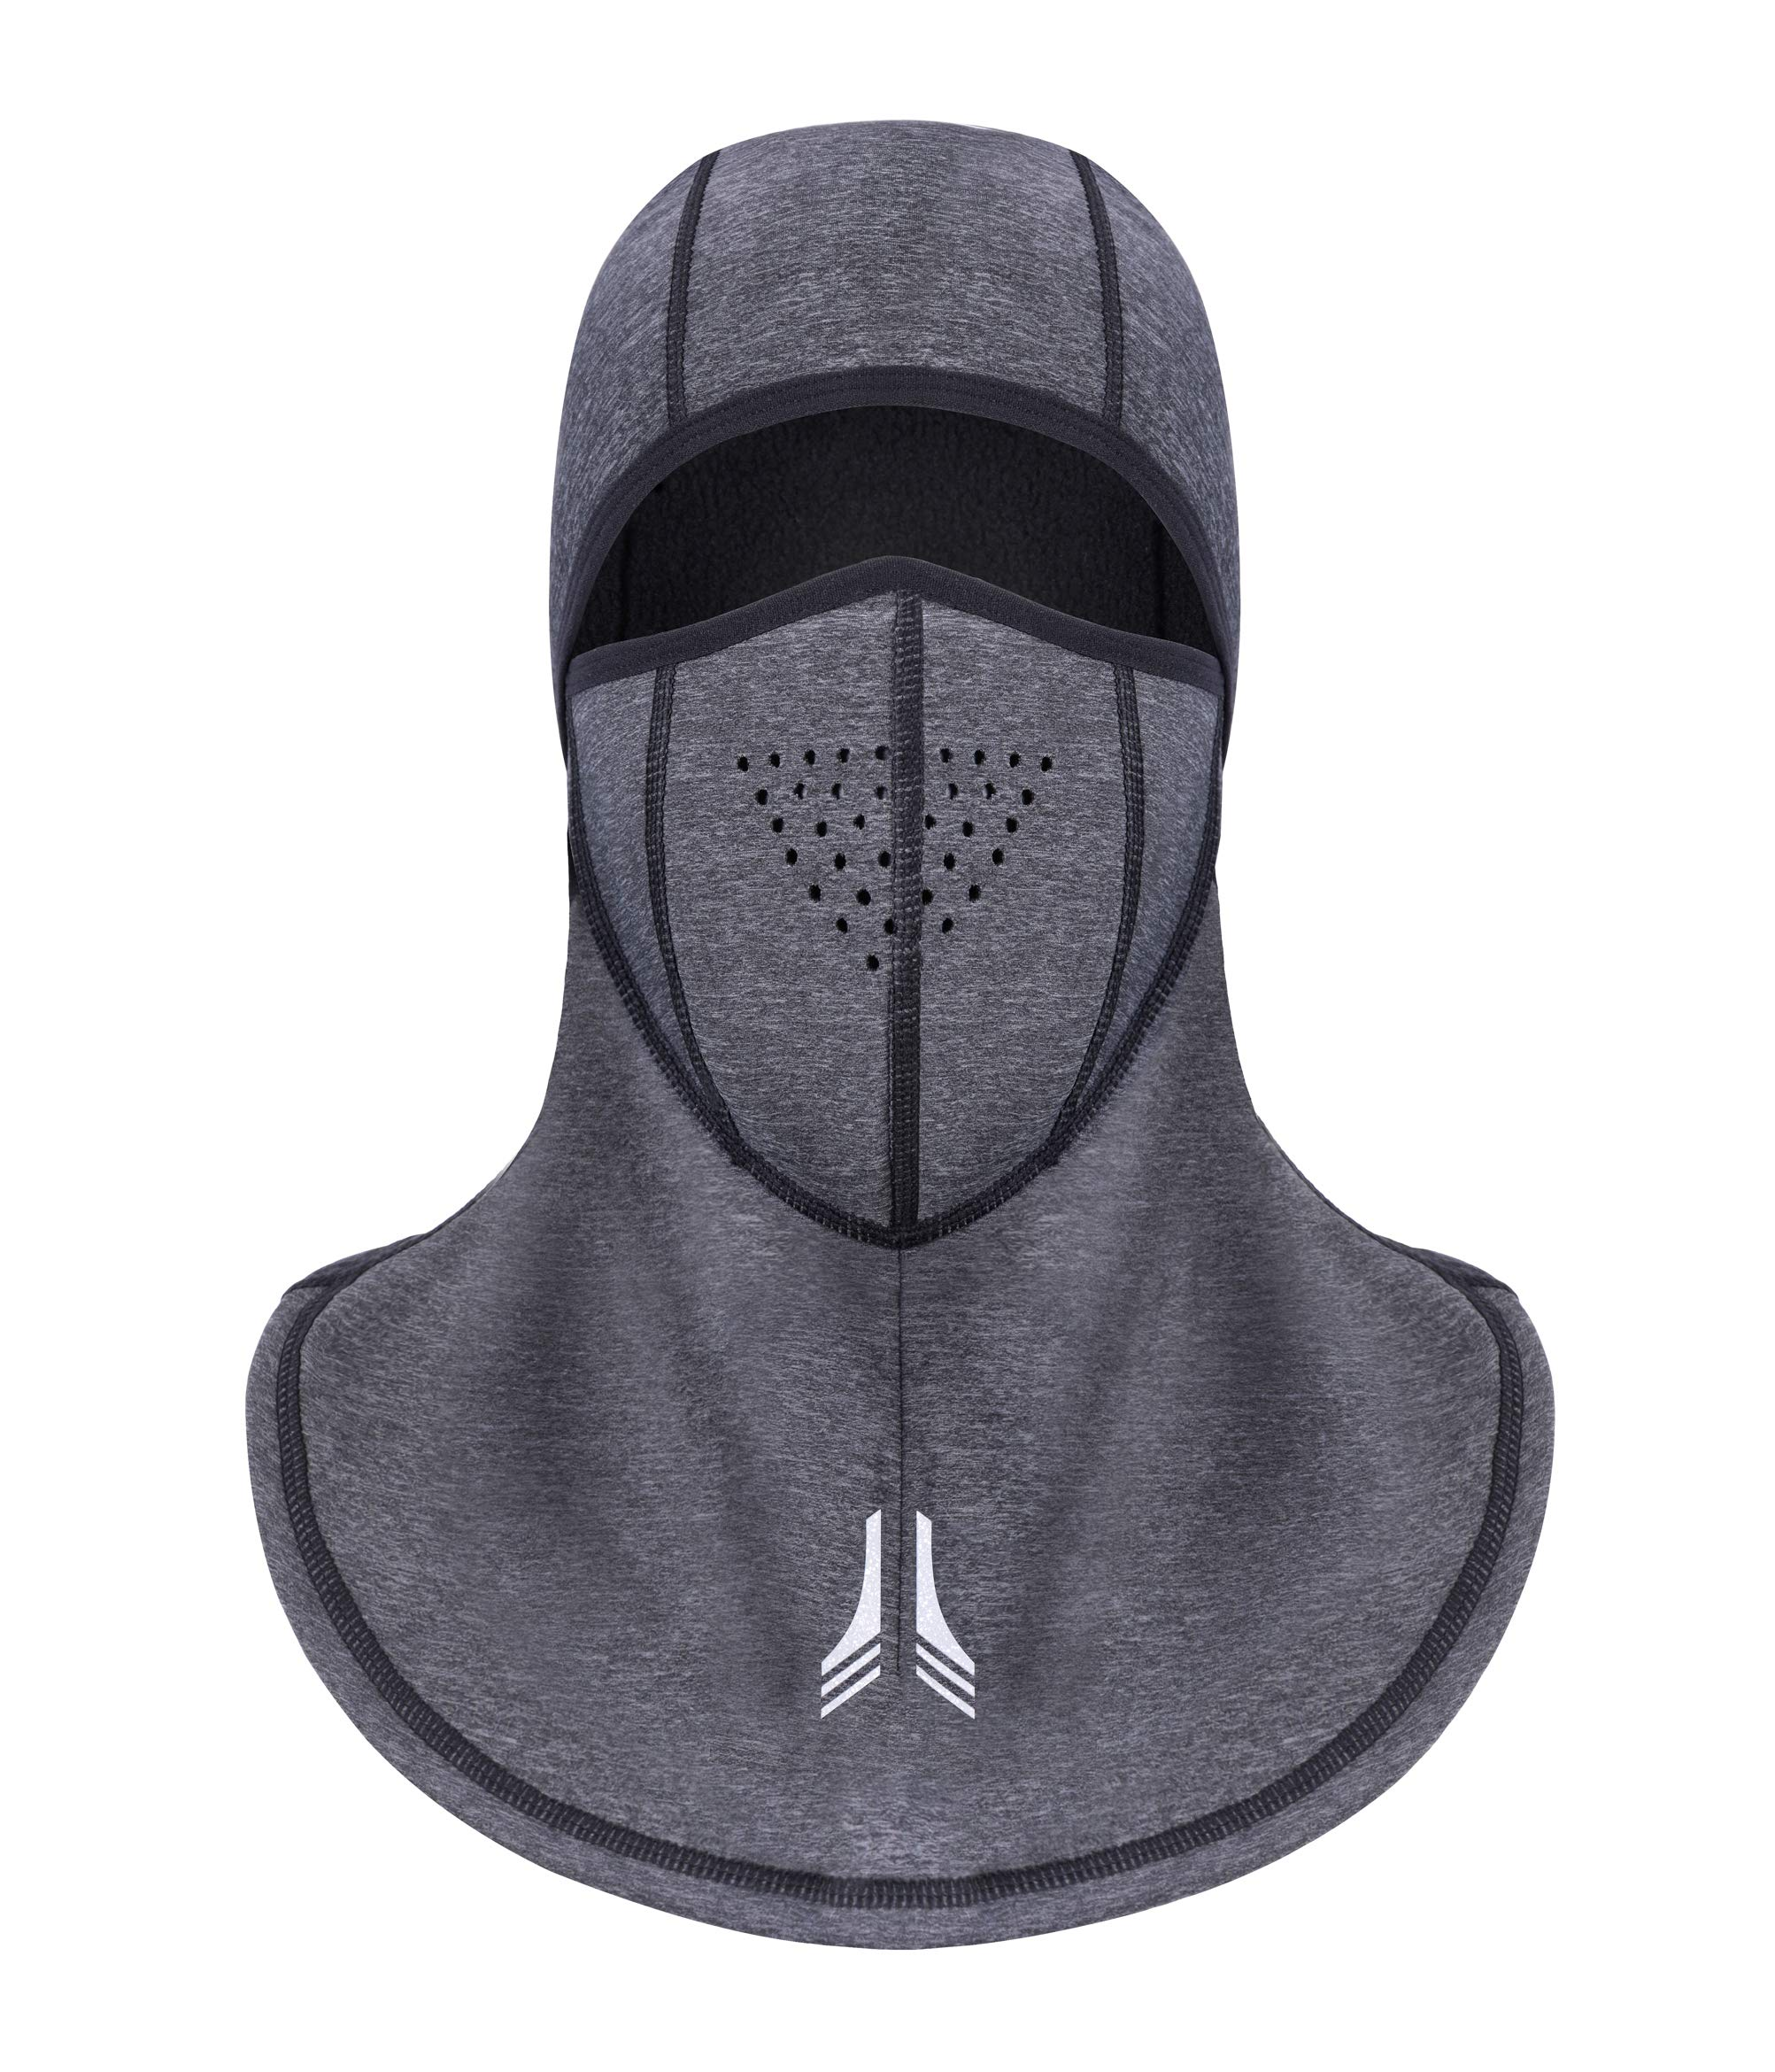 KATEGY Windproof Balaclava Face Mark, Cold Weather Face Motorcycle Mask Winter Cycling Waterproof Mask Windproof Ski Mask Full Cover Thermal for Men Skiing,Cycling,Outdoor Sports - Snowflake